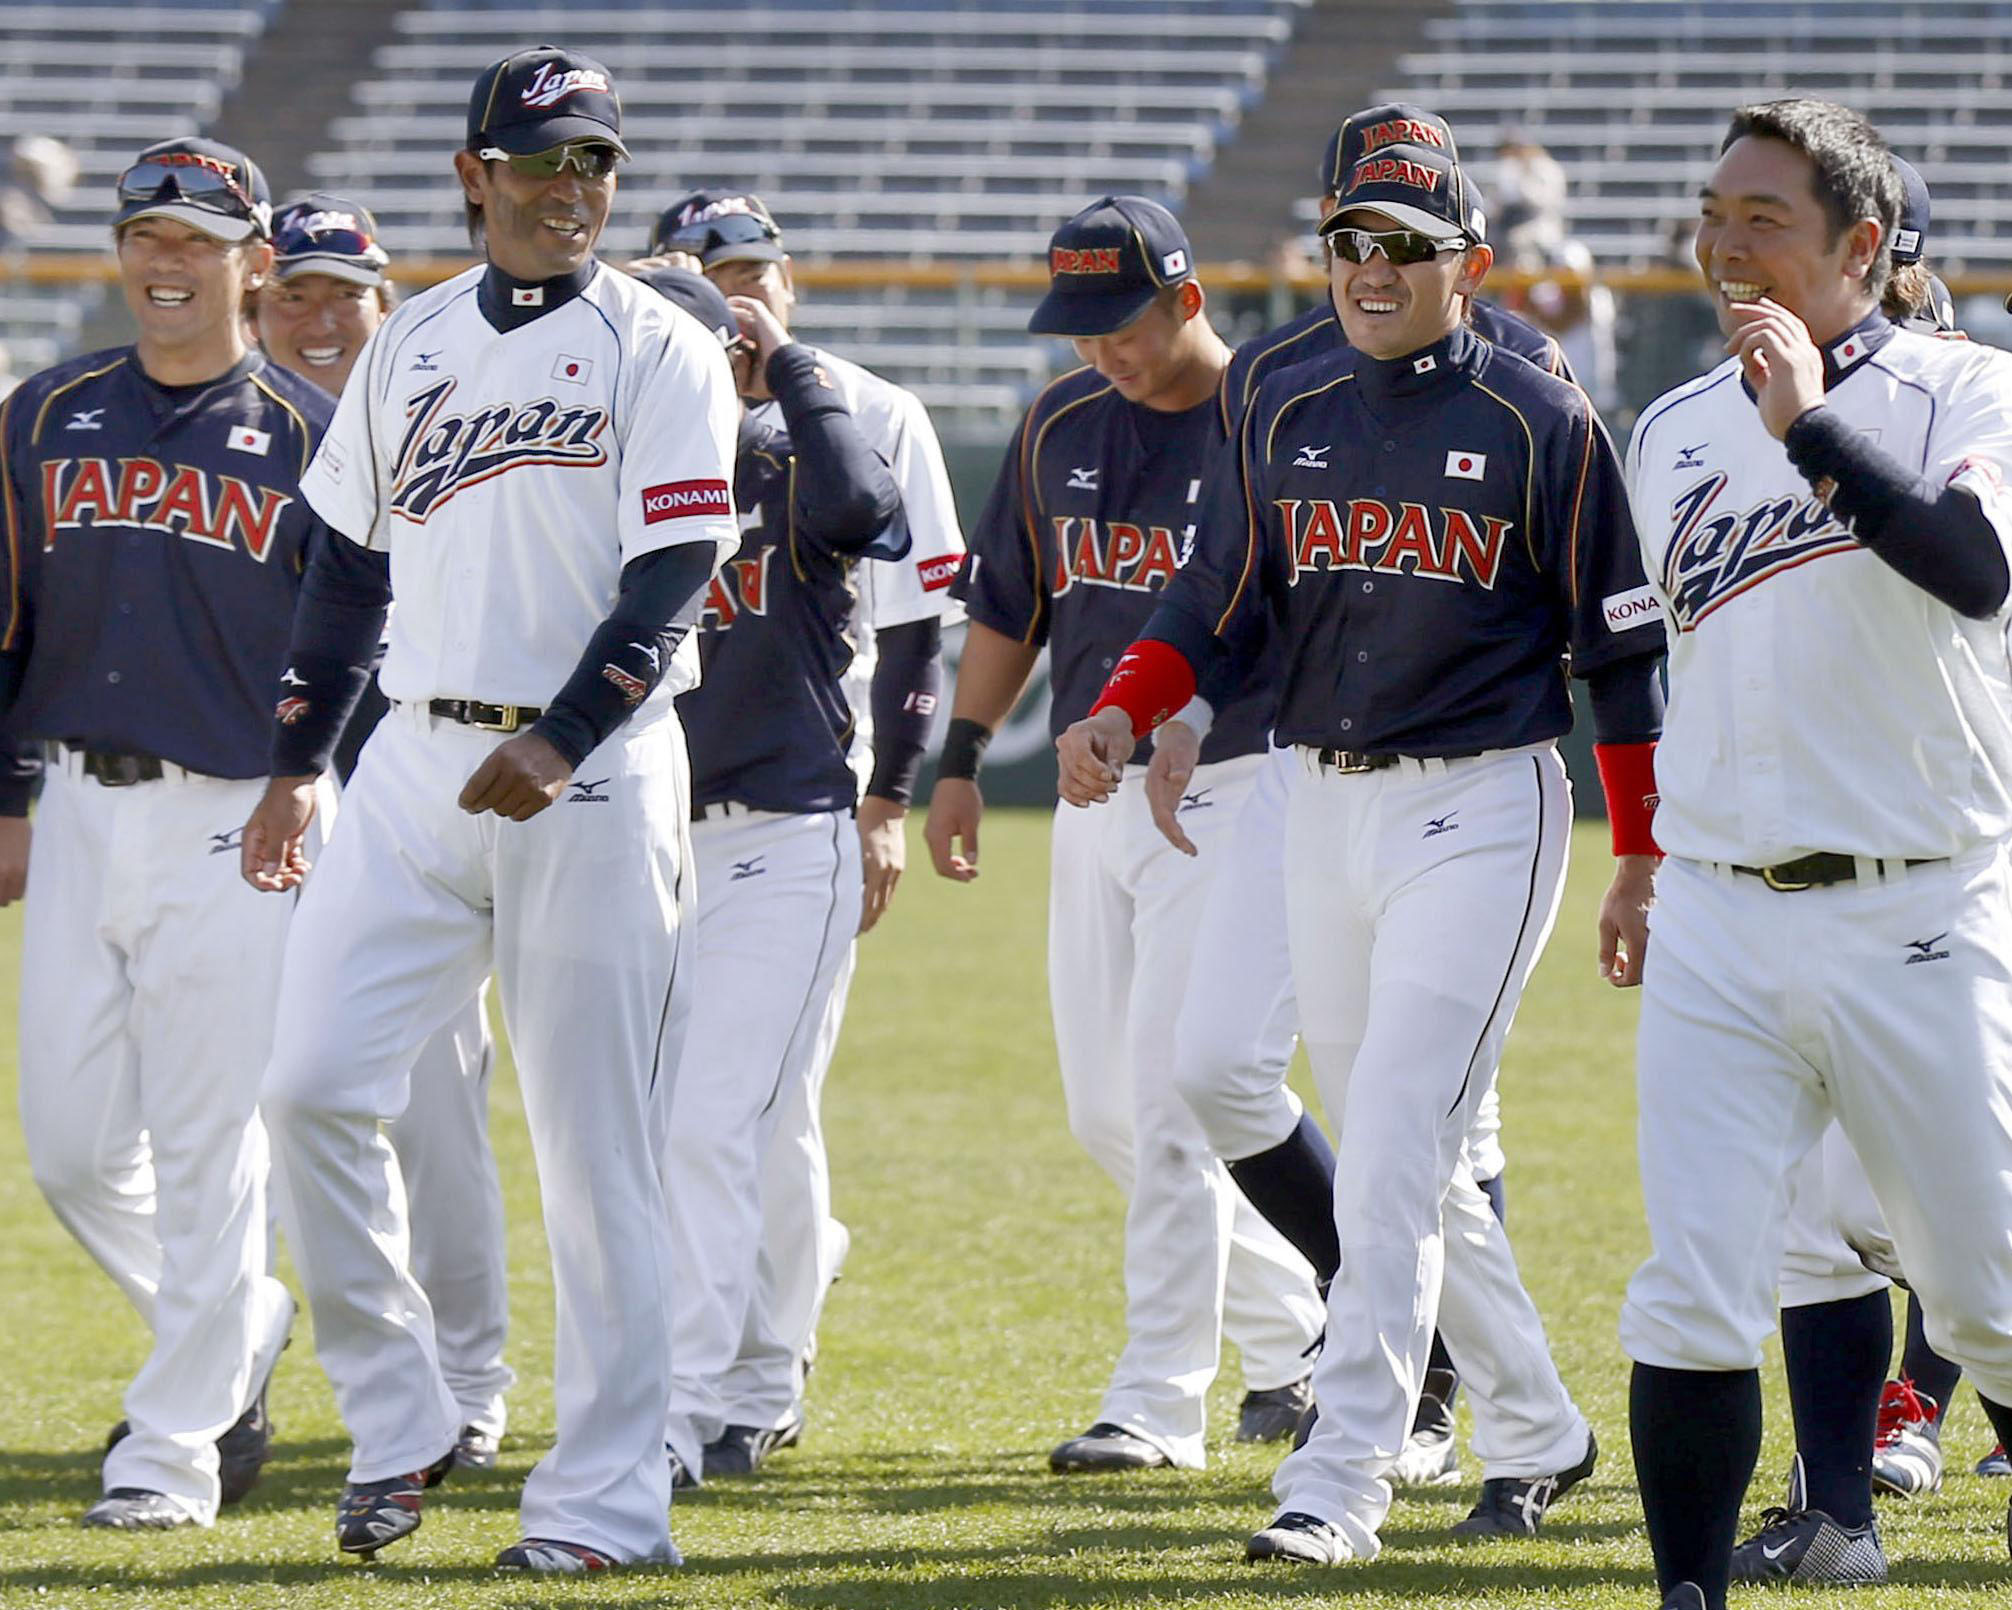 Samurai Japan will travel to hosts Chinese Taipei full of confidence after securing the last four Asian Championships